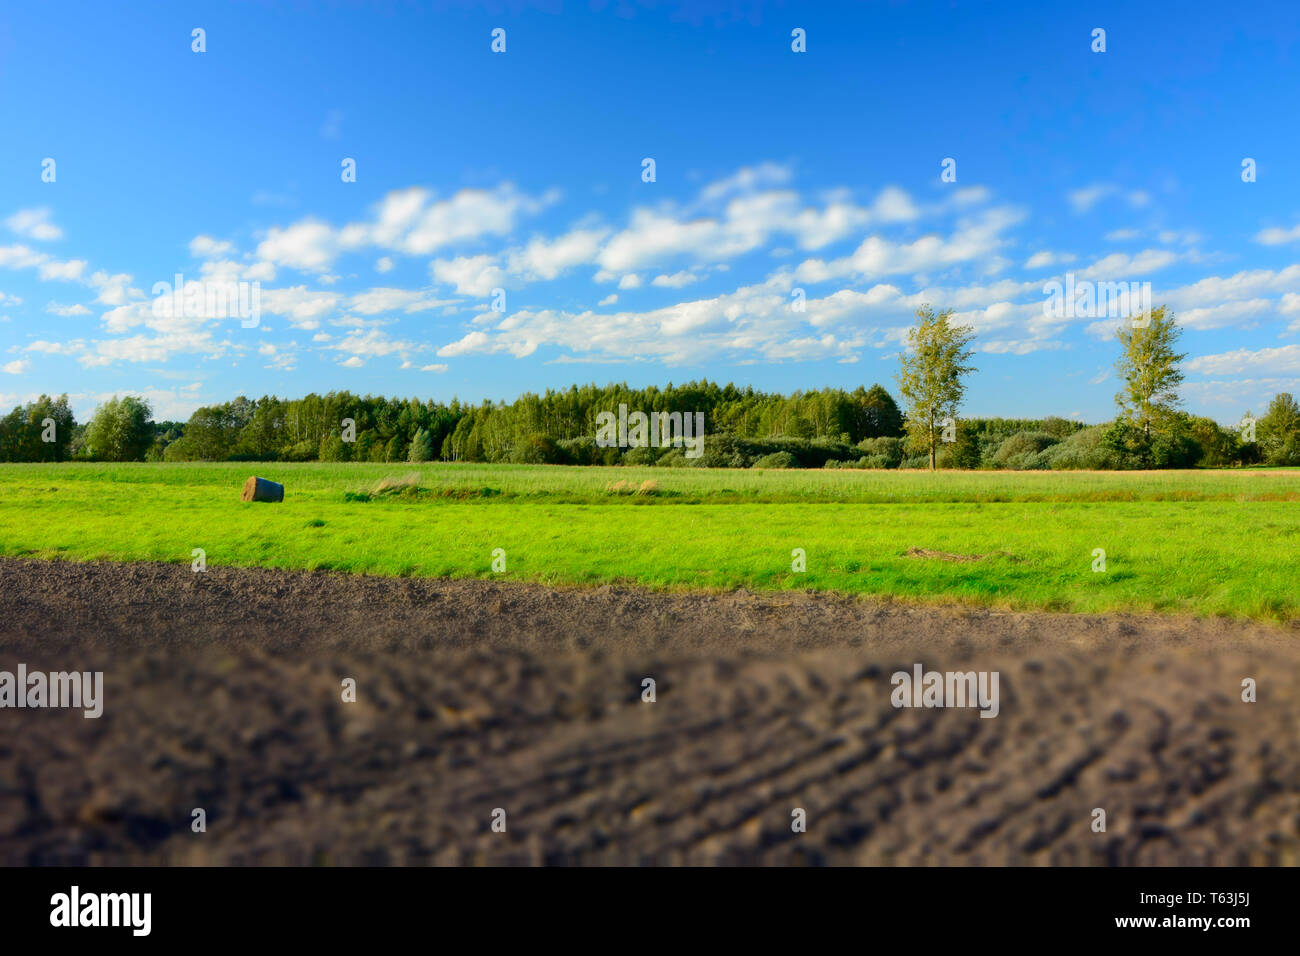 Plowed field, forest and white clouds on blue sky - blur and contrasting colors - Stock Image